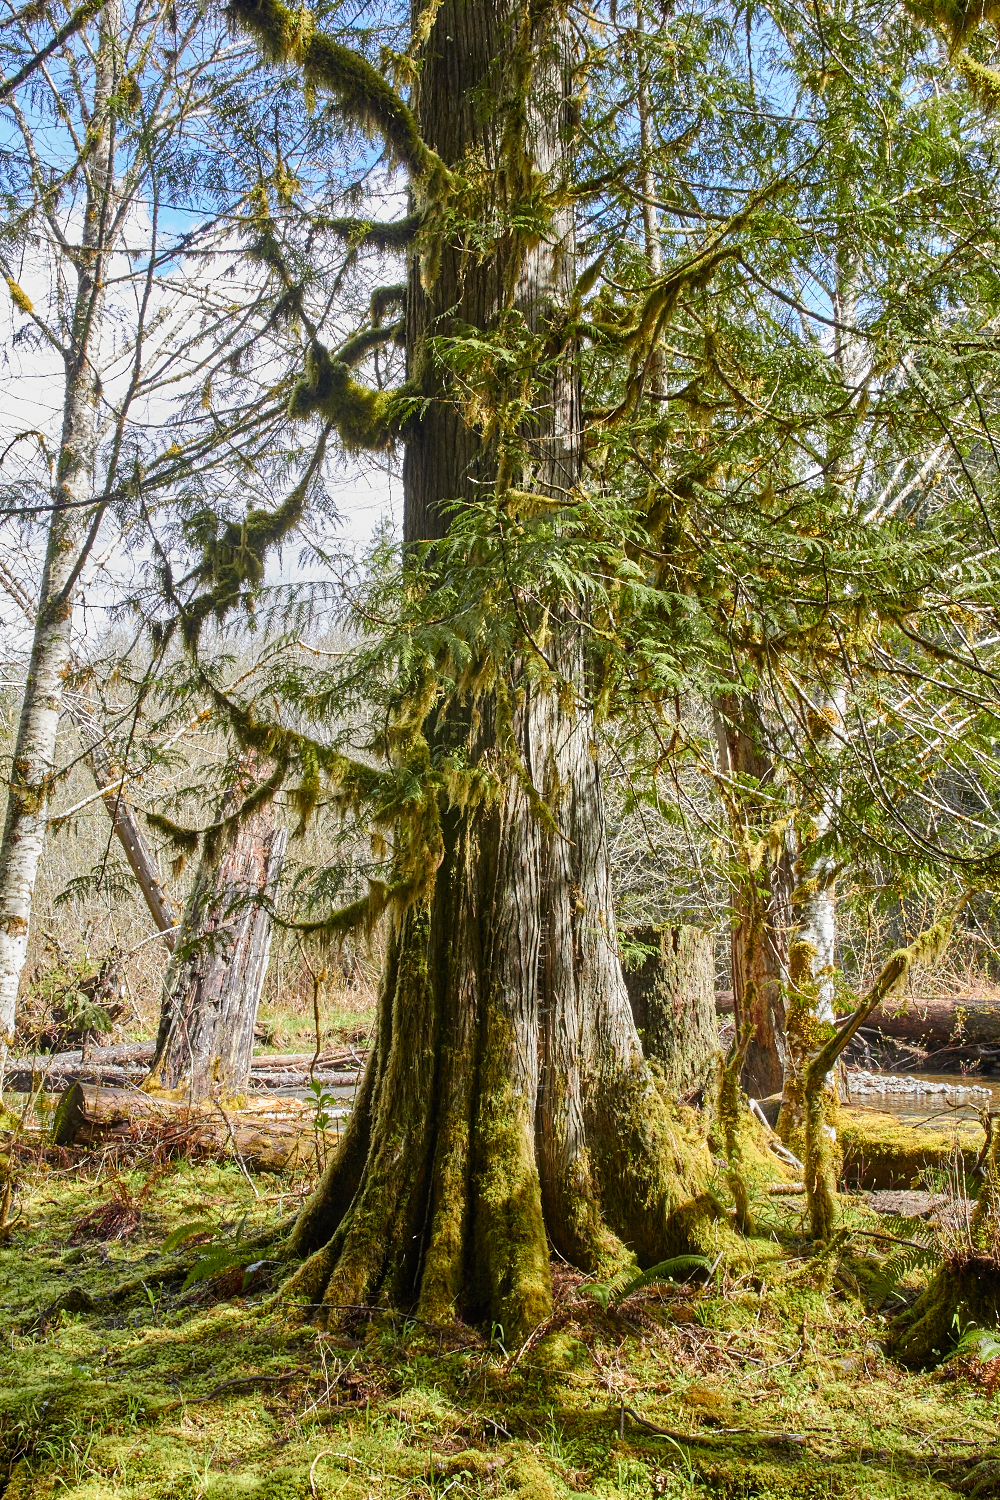 Western redcedar, the tree of life, stands tall and straight. © Scott Kloos. 2015. All Rights Reserved.